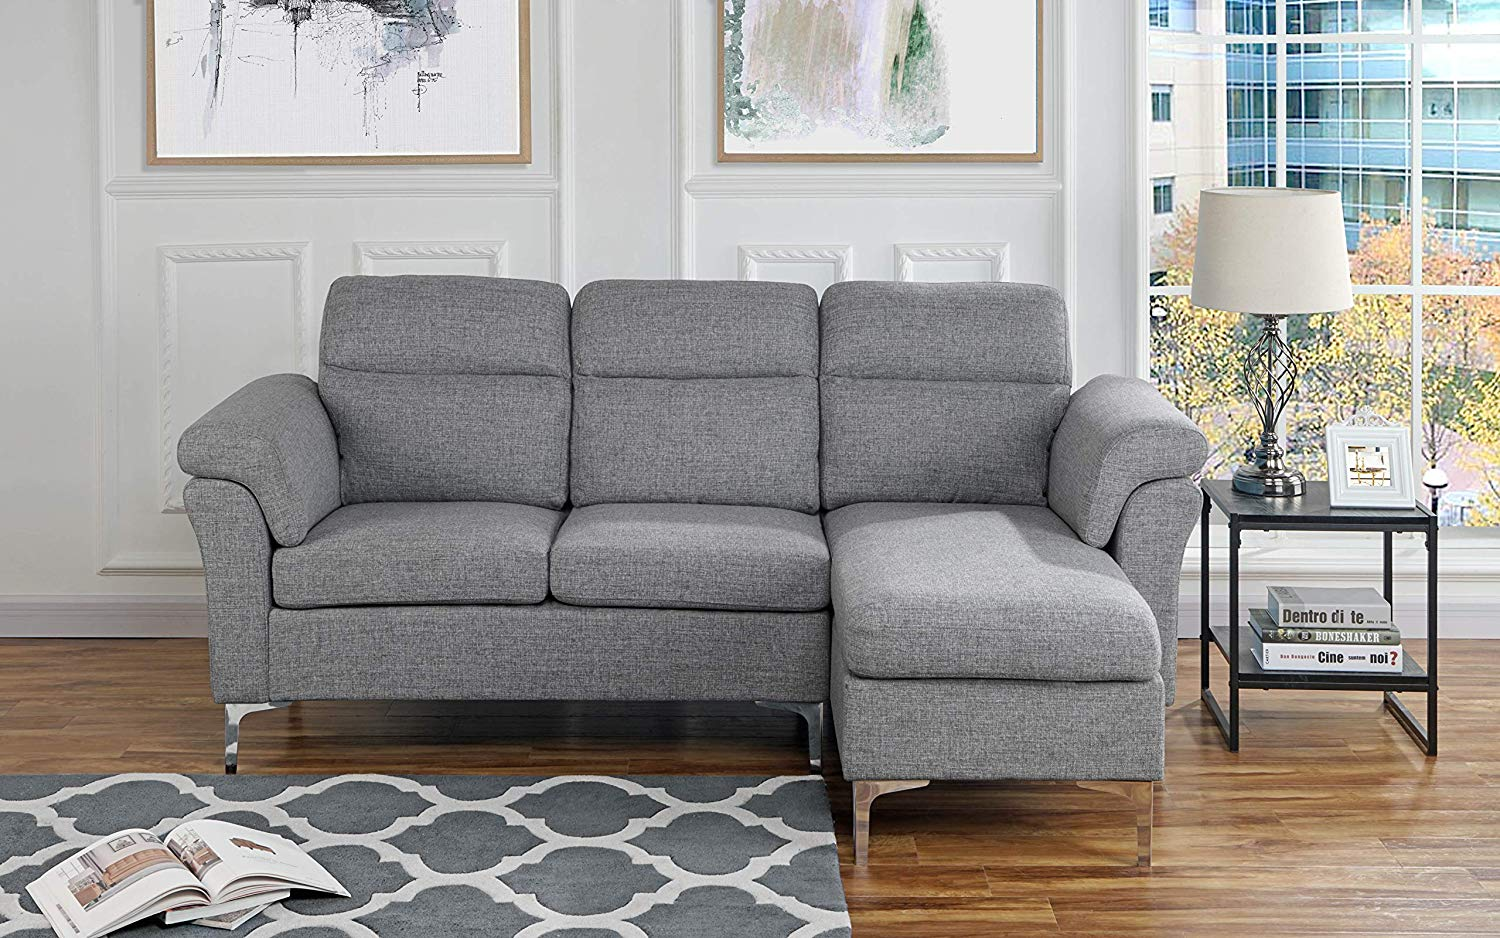 Cheap Modern Fabric Sectional Sofas, find Modern Fabric ...